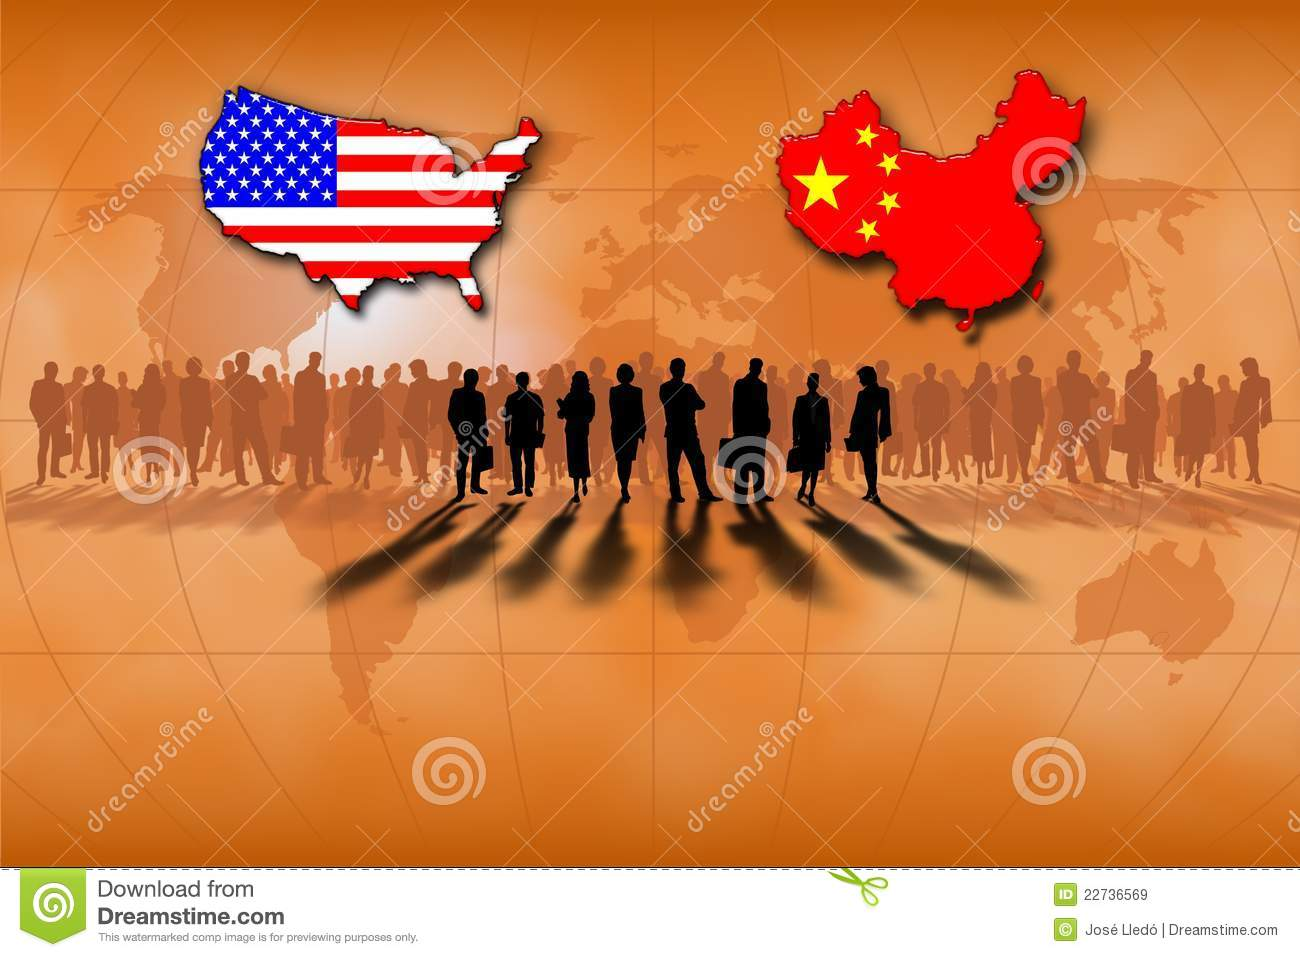 trade is a twoway street protectionism becomes destructionism it costs jobs president ronald reagan june 20 1986  us china trade war update  february 21 2019